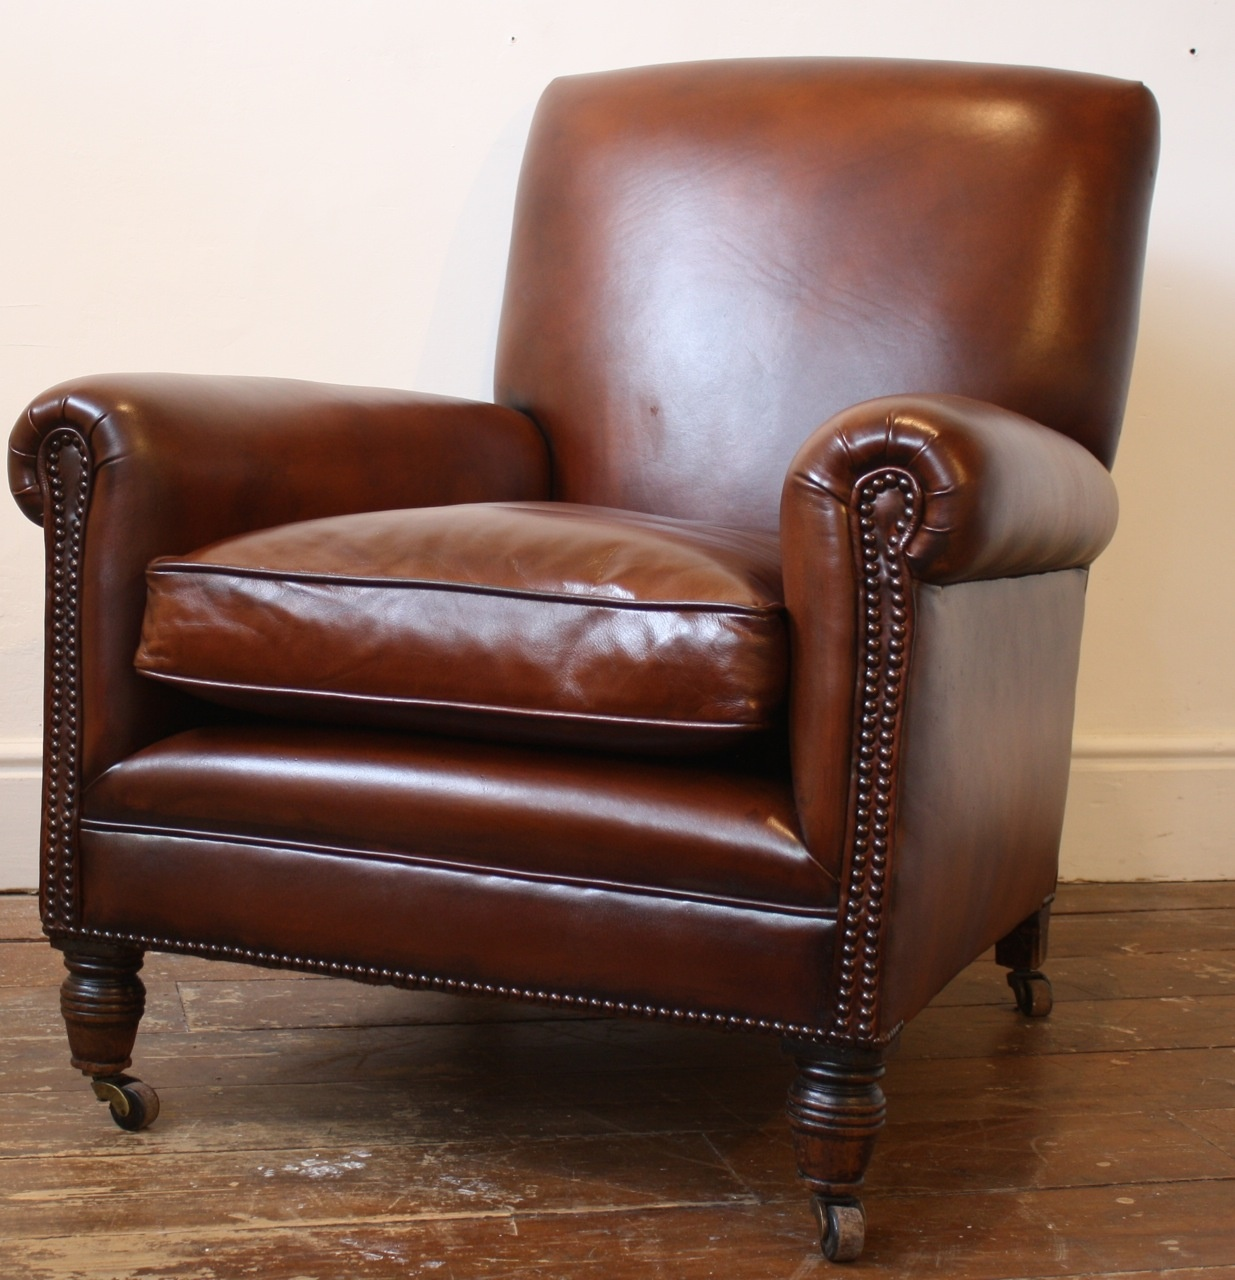 off chairs manhattan chair brown club pottery leather barn